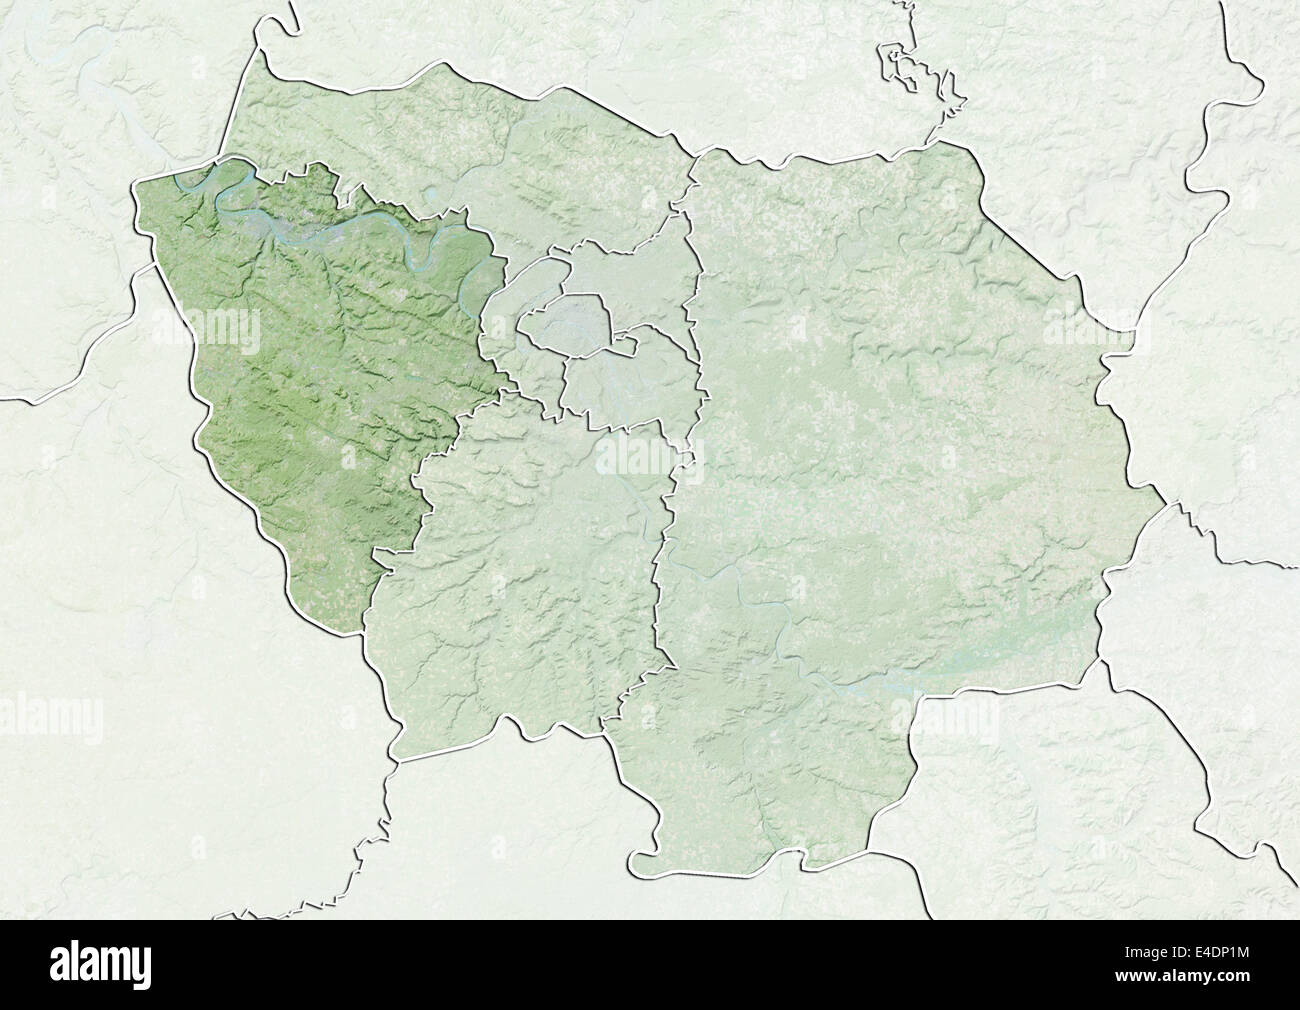 Map Of Yvelines France.Departement Of Yvelines France Relief Map Stock Photo 71602768